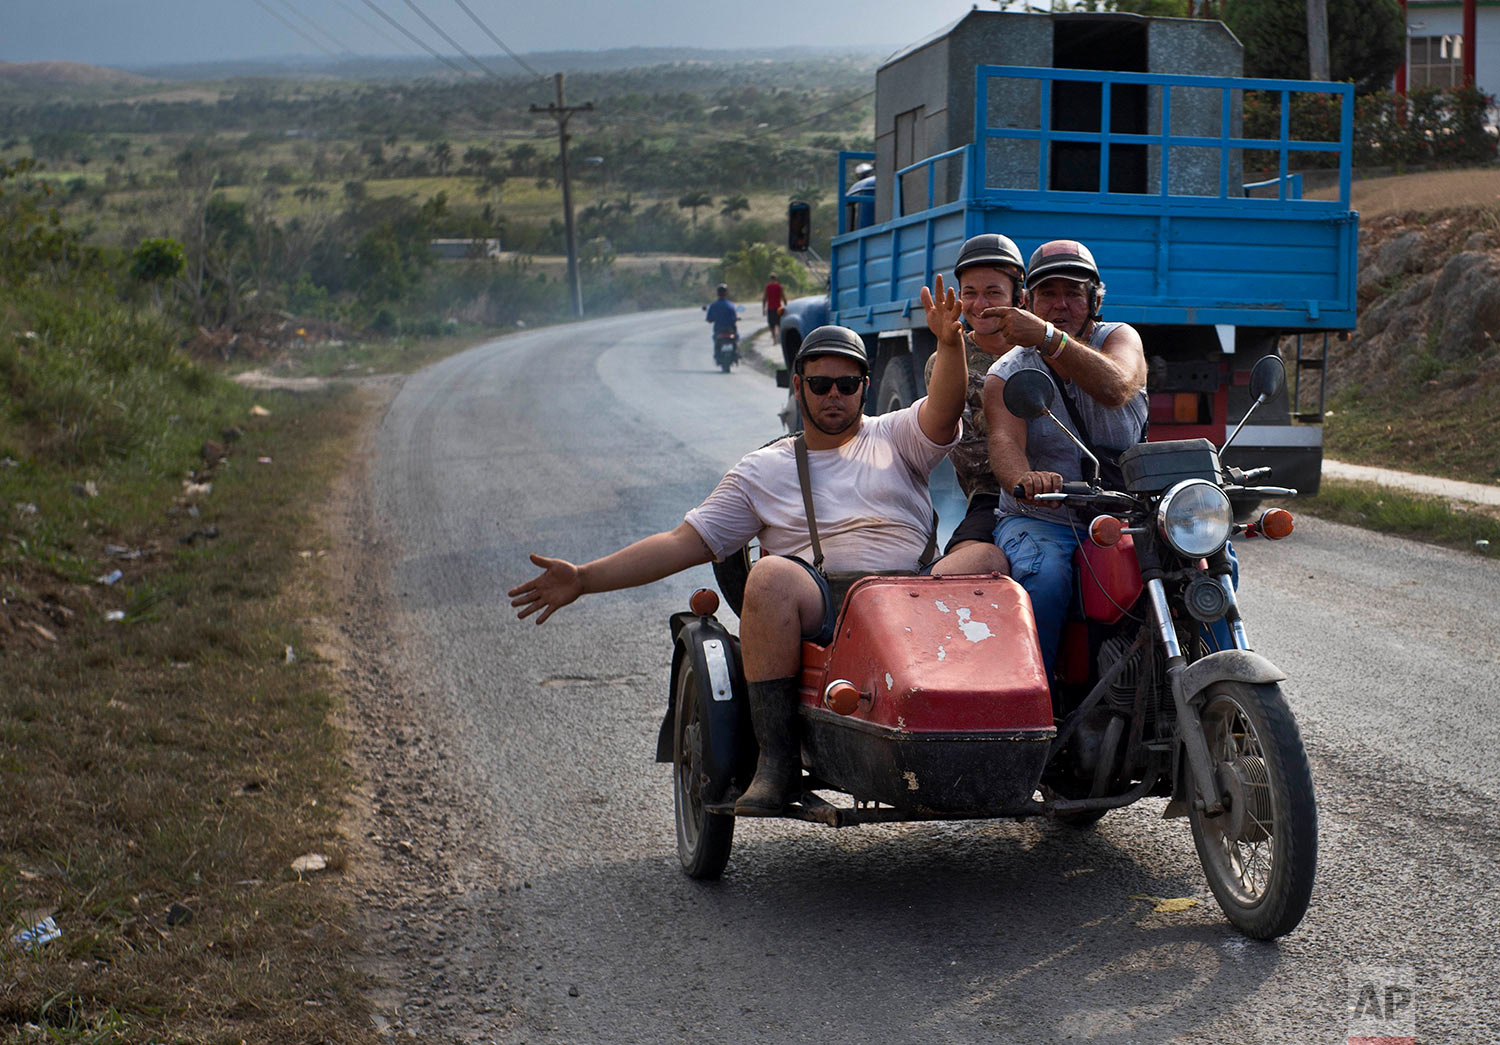 """In this April 13, 2018 photo, motorcycle taxi driver Ricardo Medina, 60, transports vegetable vender Rigoberto Herrera Mendez, left, and coconut vendor Osvaldo Ochoa in Campo Florido, east of Havana, Cuba. The three men expressed hope that new government leadership will improve things, saying the country cannot move backwards. """"We survive life with our work,"""" said Medina. (AP Photo/Ramon Espinosa)"""